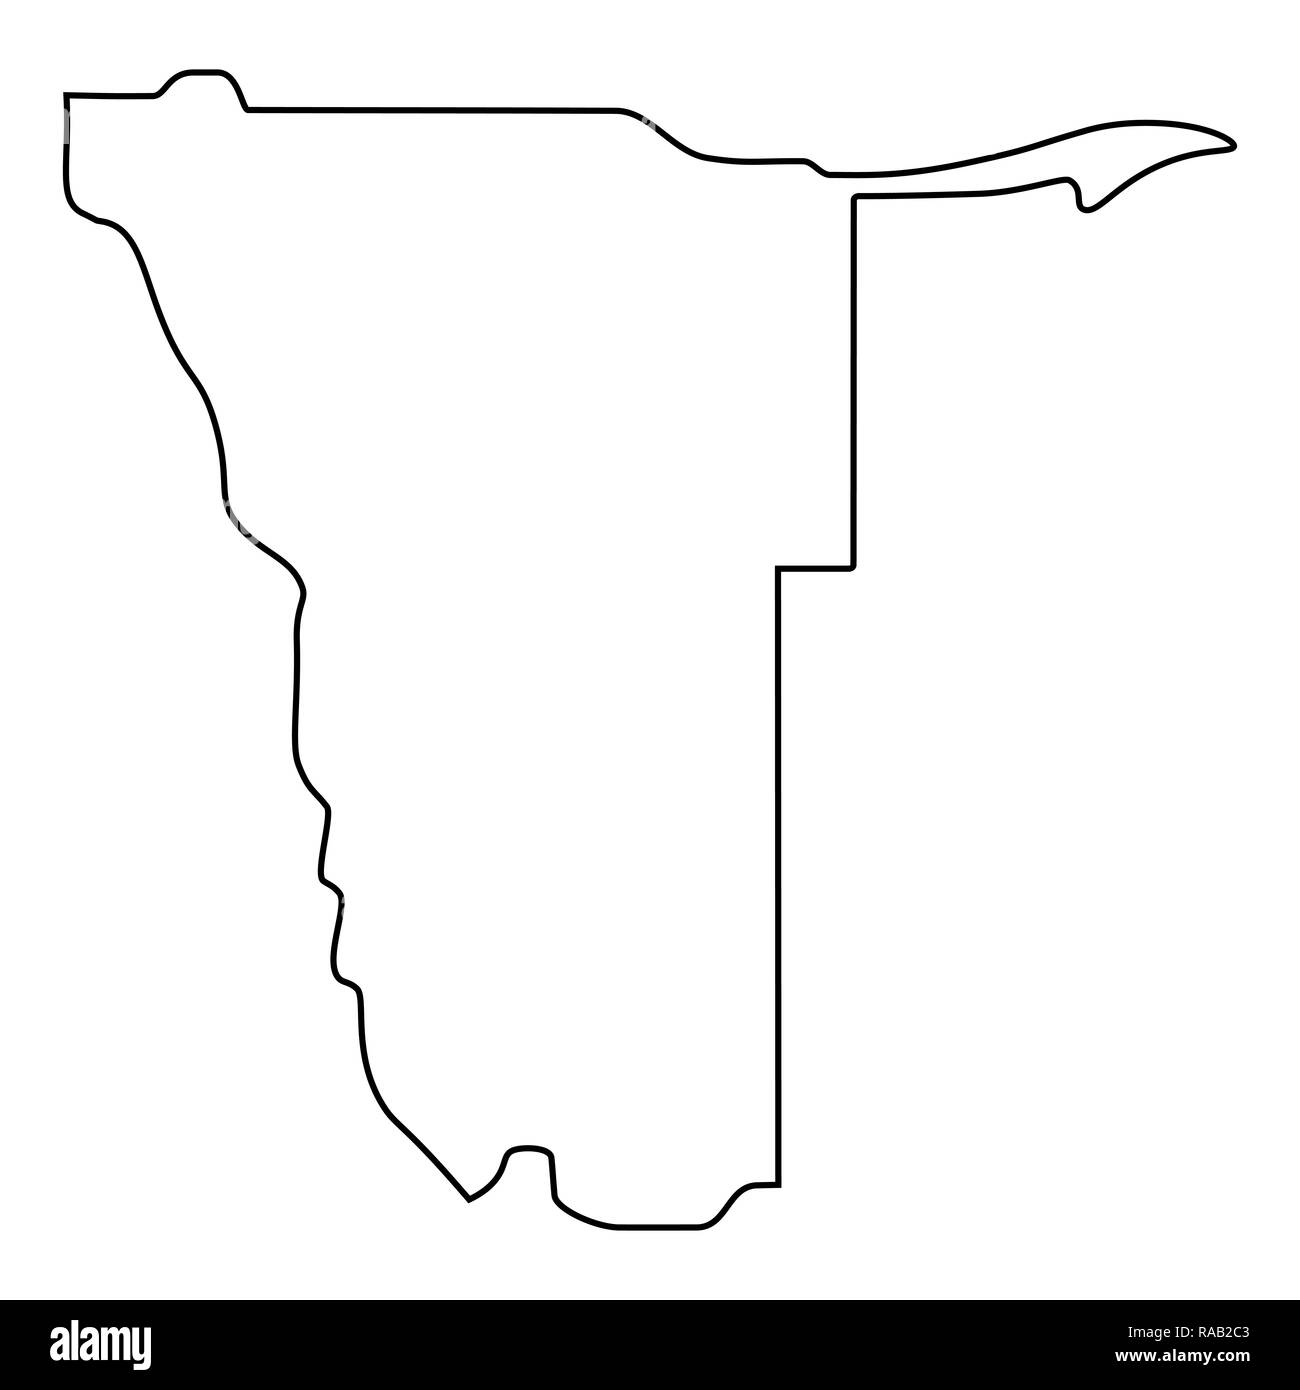 map of Namibia - outline. Silhouette of Namibia map  illustration - Stock Image